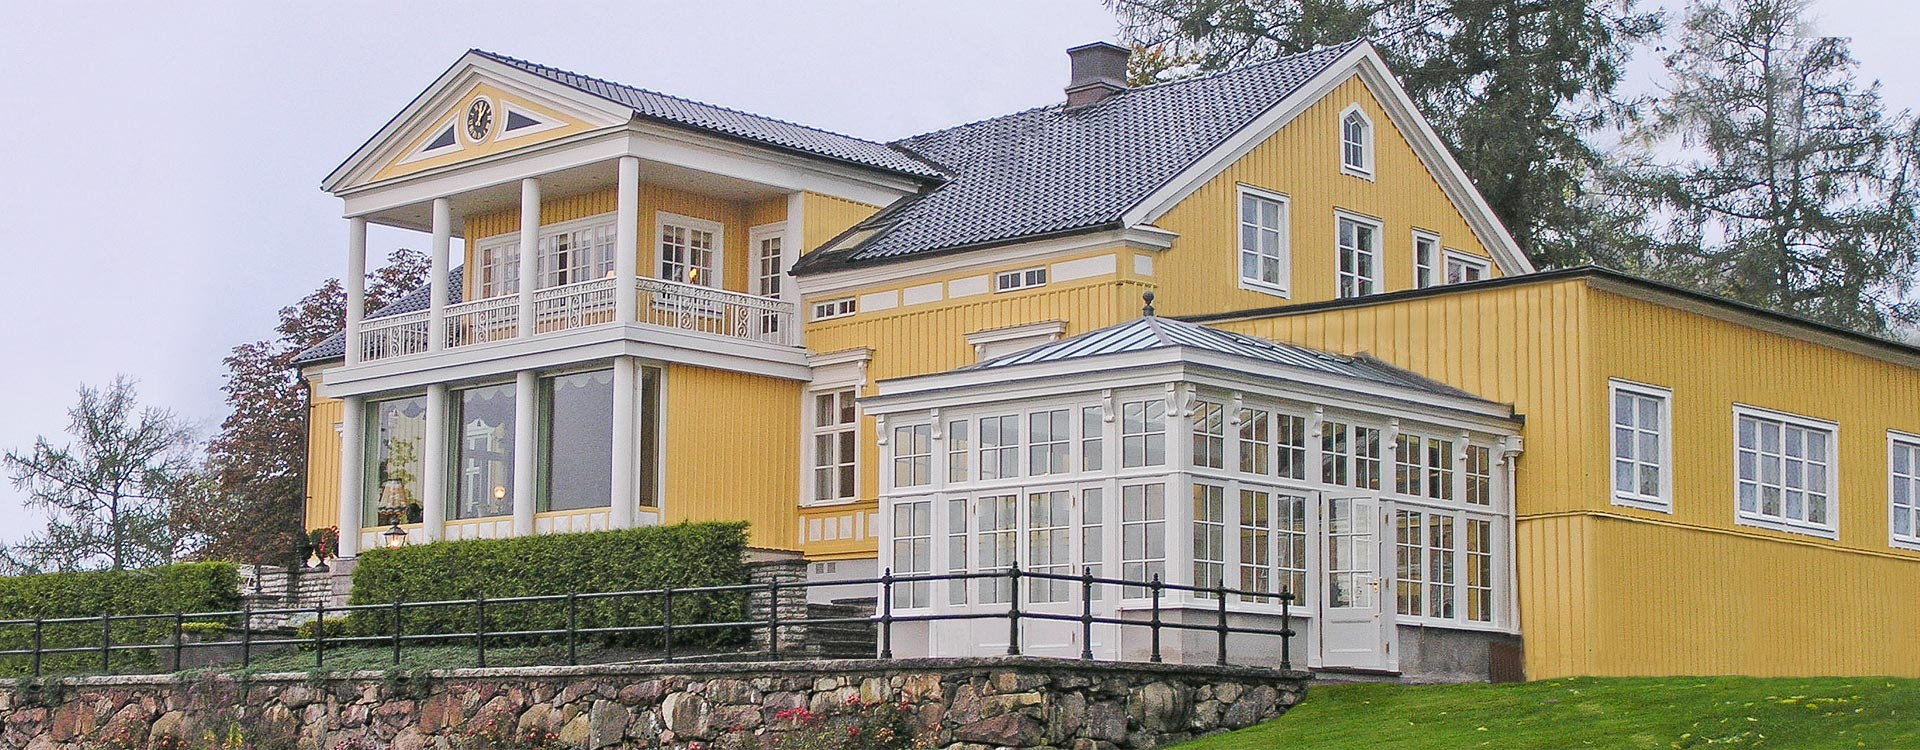 Conservatory in Sweden